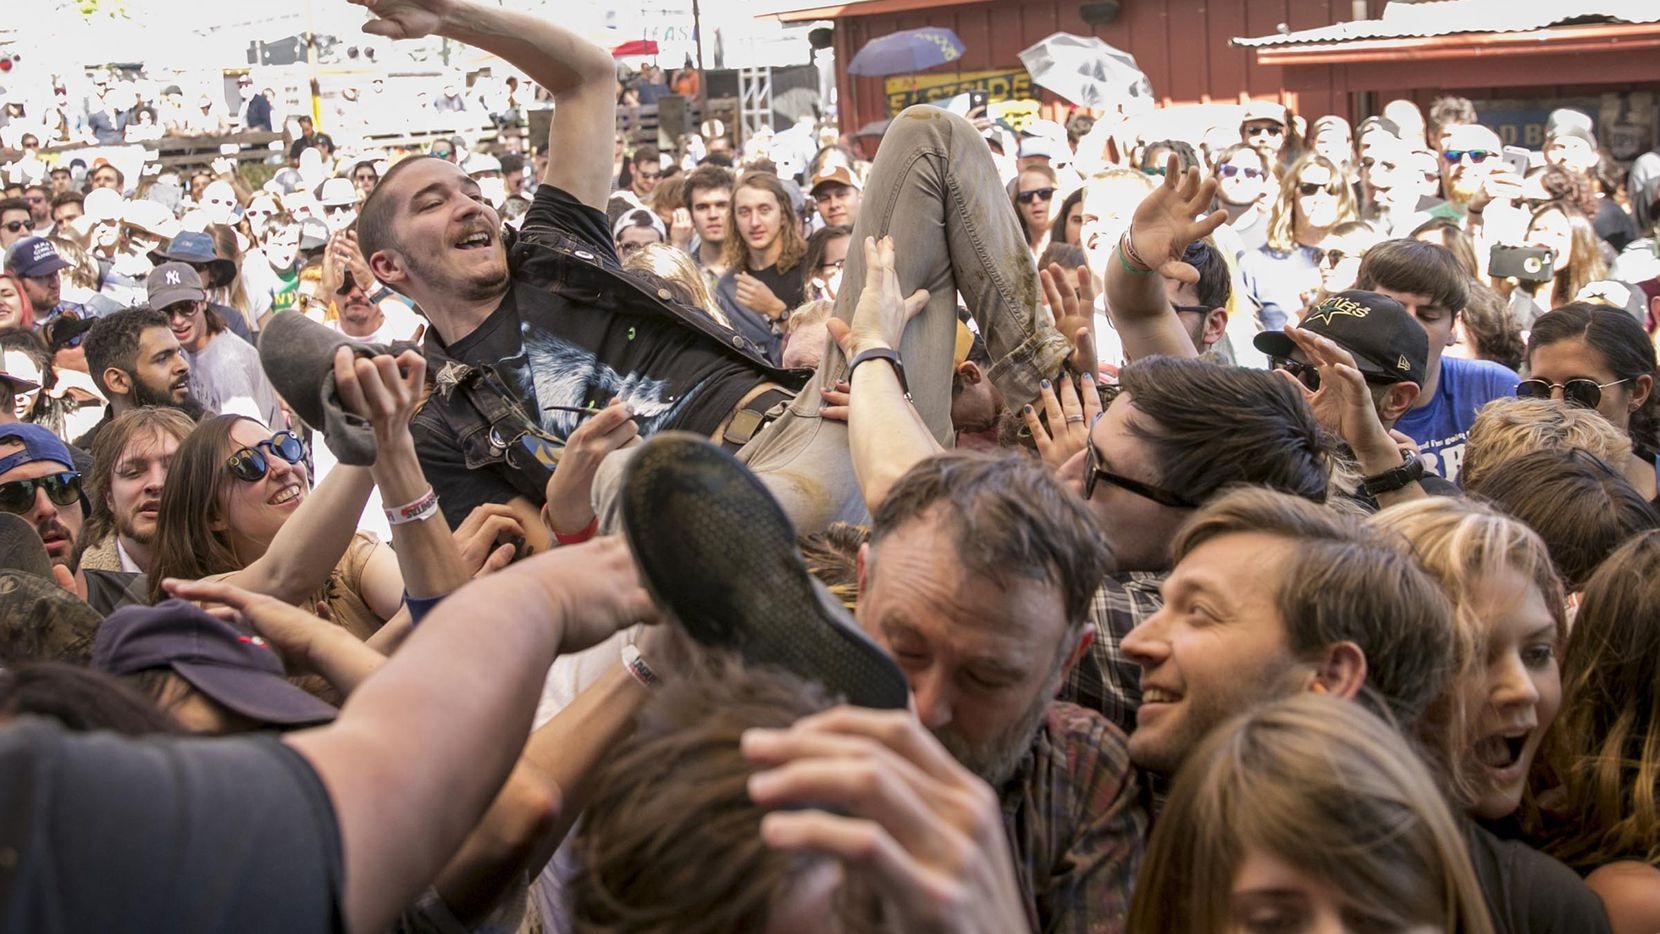 Brett Mason of Austin crowdsurfs during a set by Thee Oh Sees on Tuesday, March 14, 2017 at the Independence and Lagunitas Bug Out party at the Scoot Inn during South by Southwest. (Jay Janner/Austin American-Statesman/TNS)